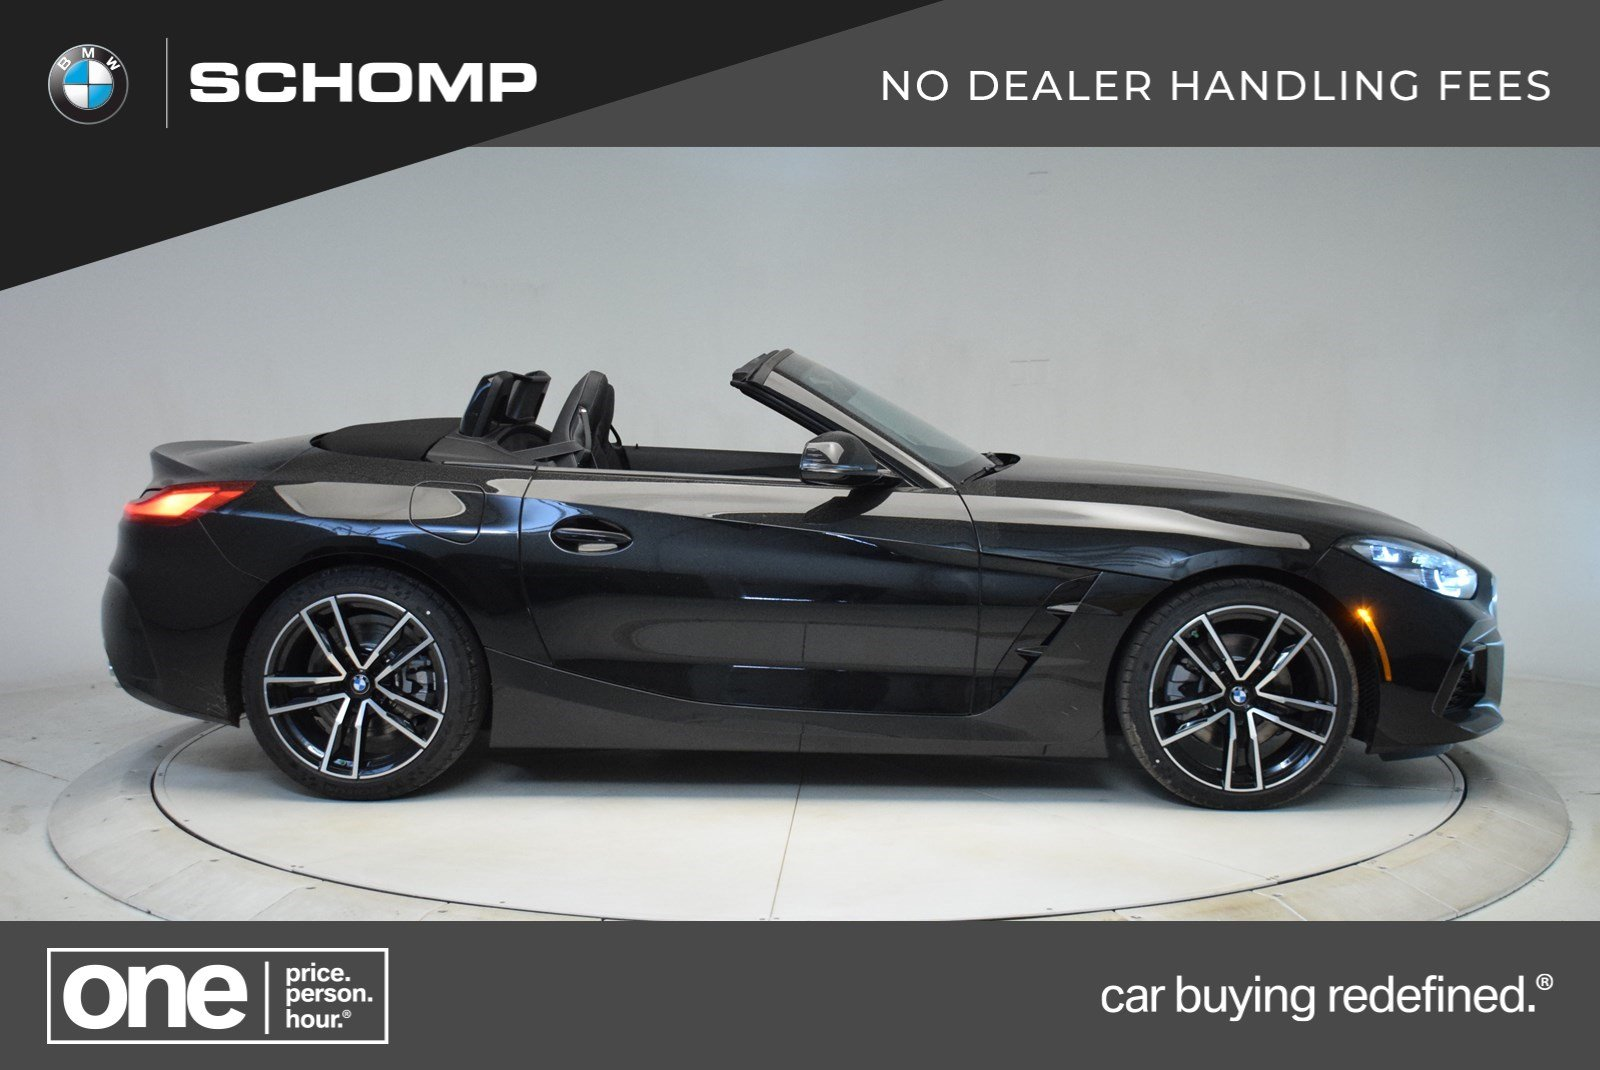 New 2019 Bmw Z4 Sdrive30i Convertible In Highlands Ranch 1b91302